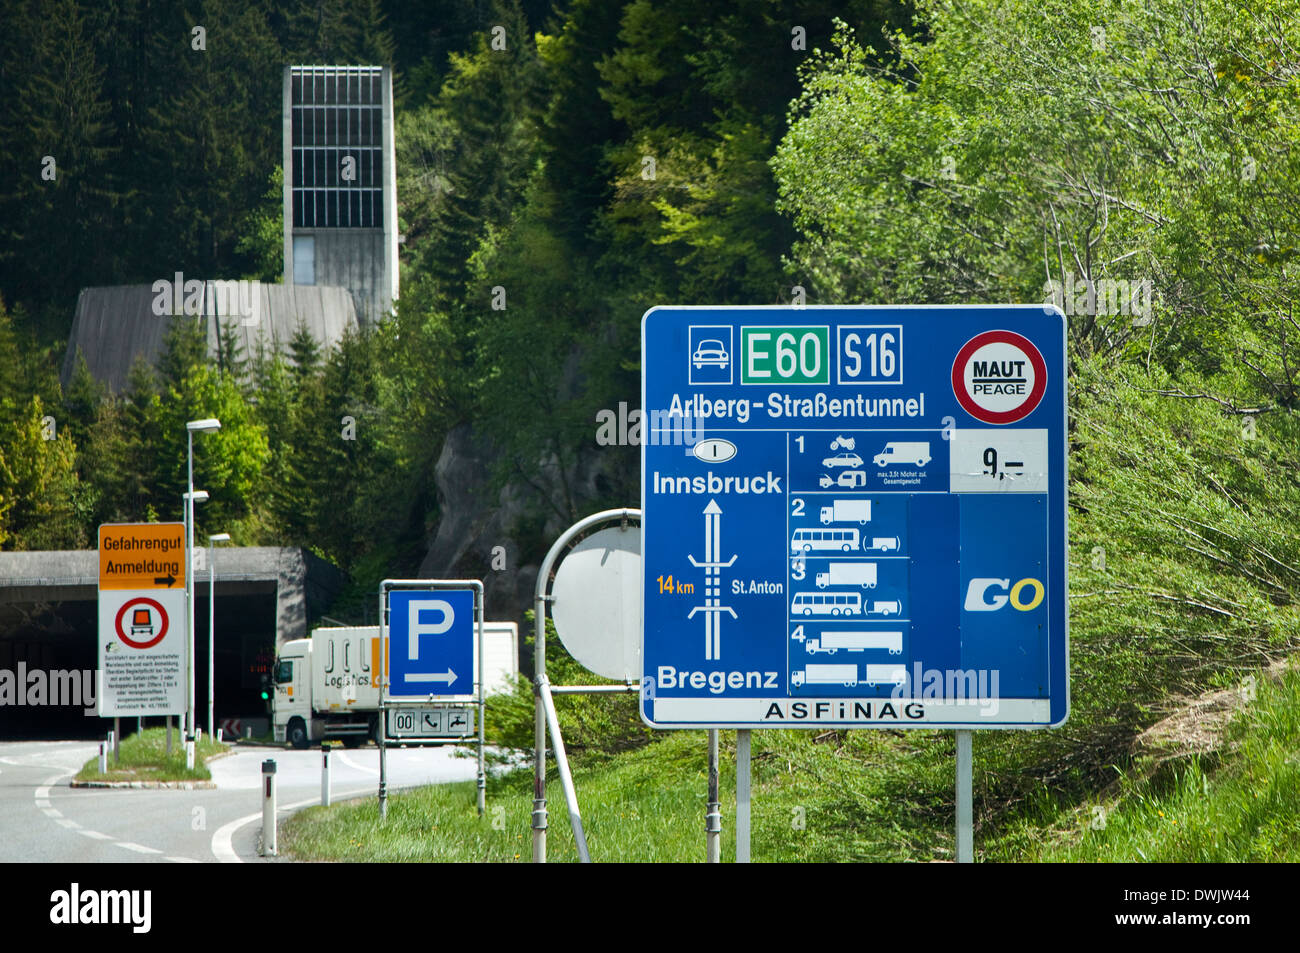 Sign and Entrance to the Arlberg Road Tunnel, Austria - Stock Image